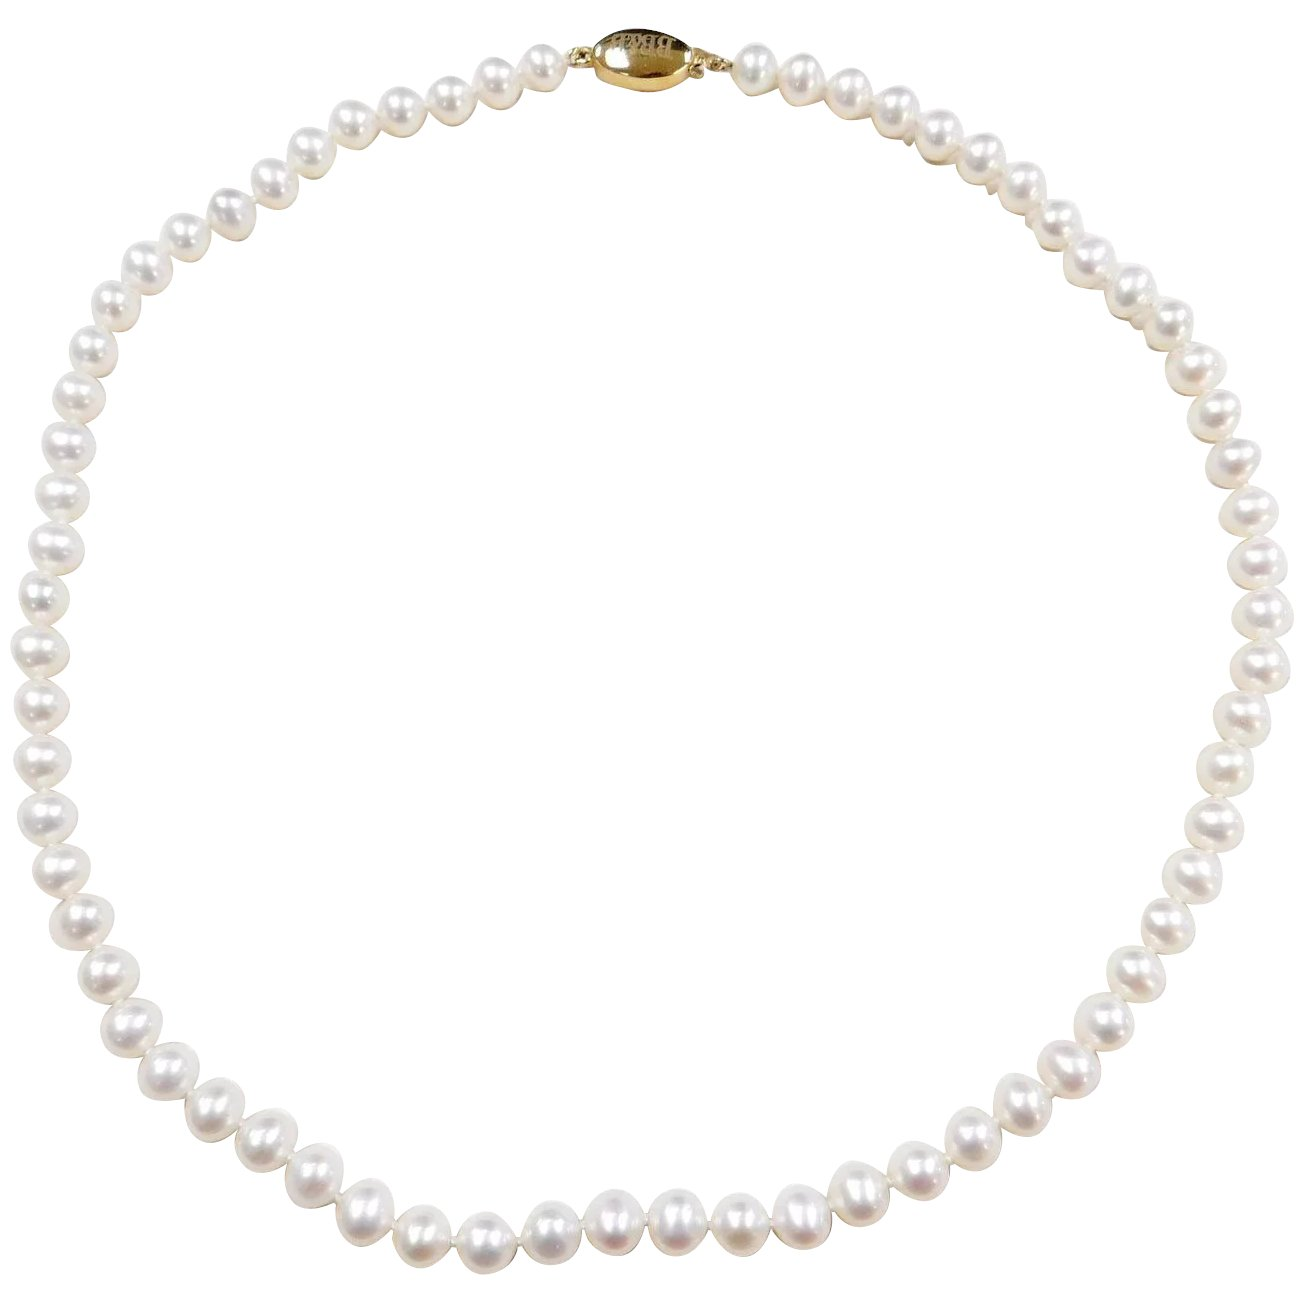 Vintage 14k Gold Strand Of Cultured Pearls Necklace 18 Bailey Banks Arnold Jewelers Ruby Lane